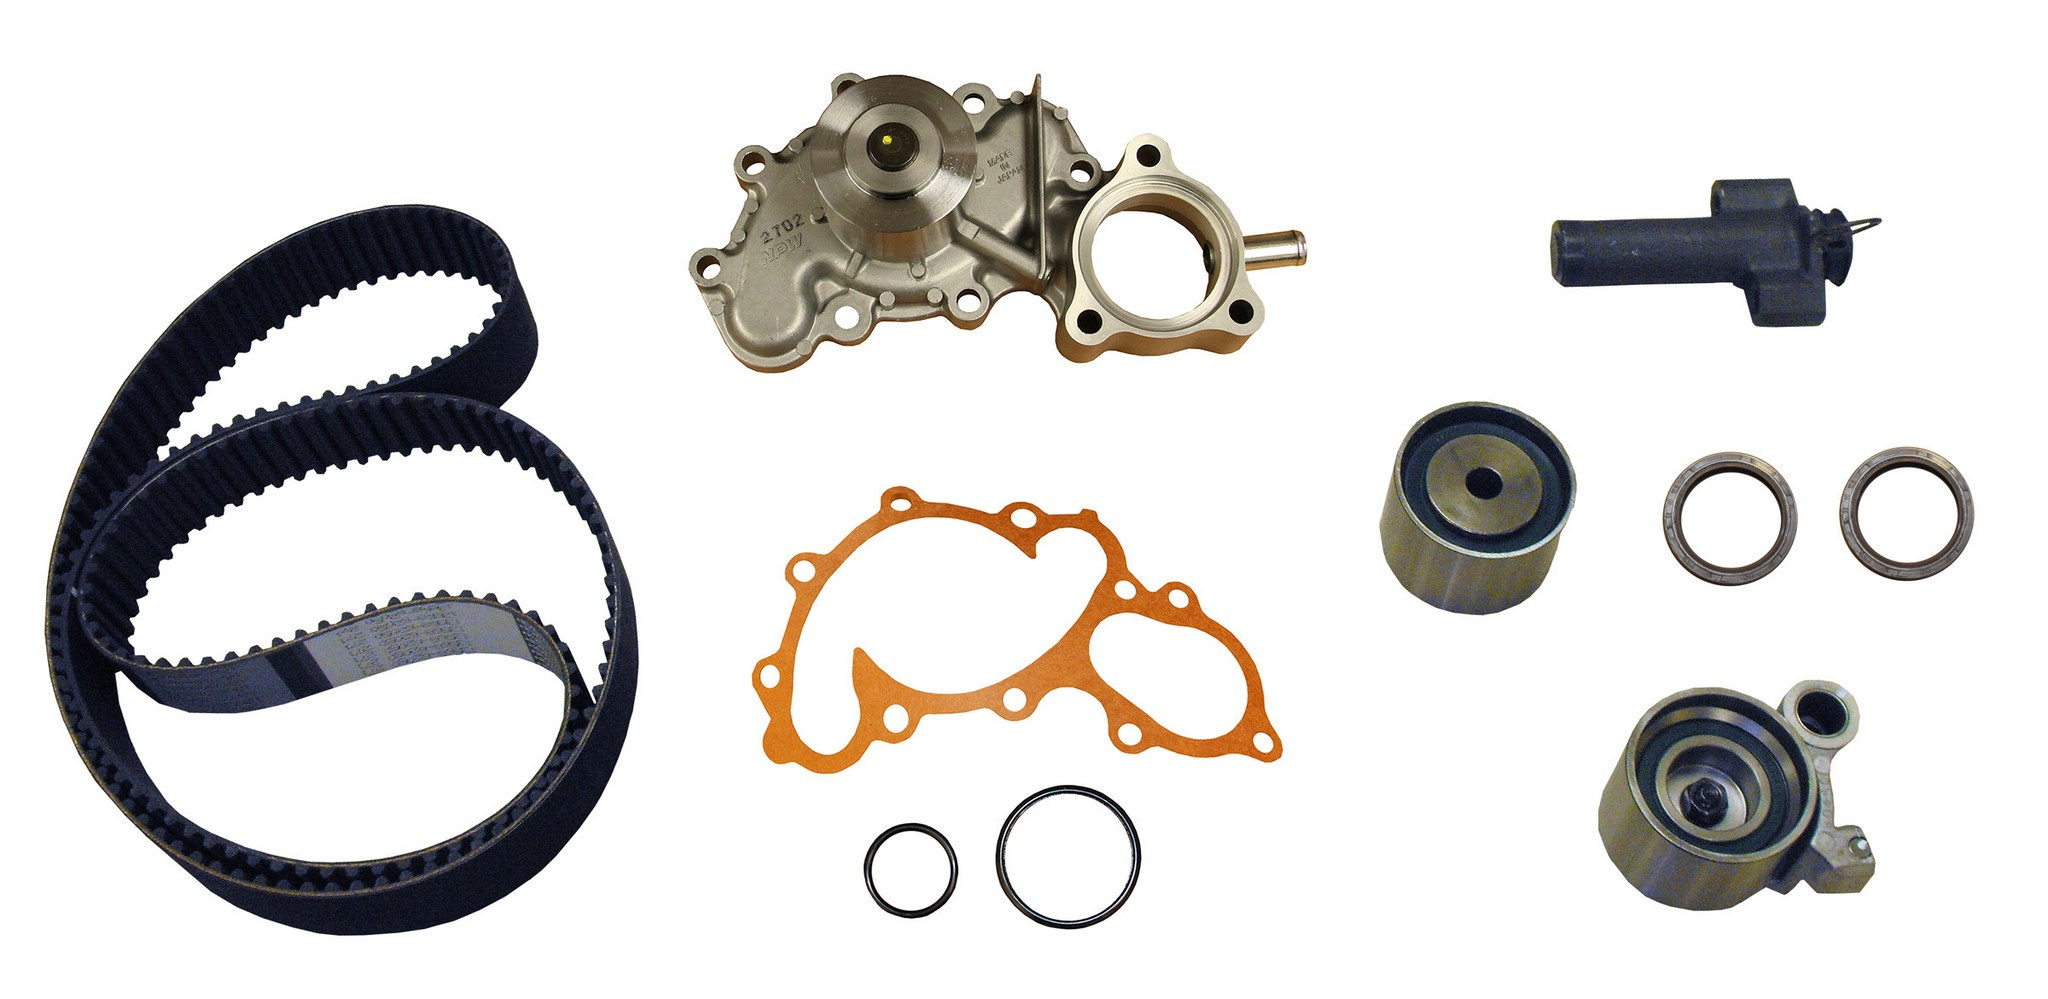 2001 Toyota 4runner Engine Timing Belt Kit With Water Pump For C8 Pp271lk1